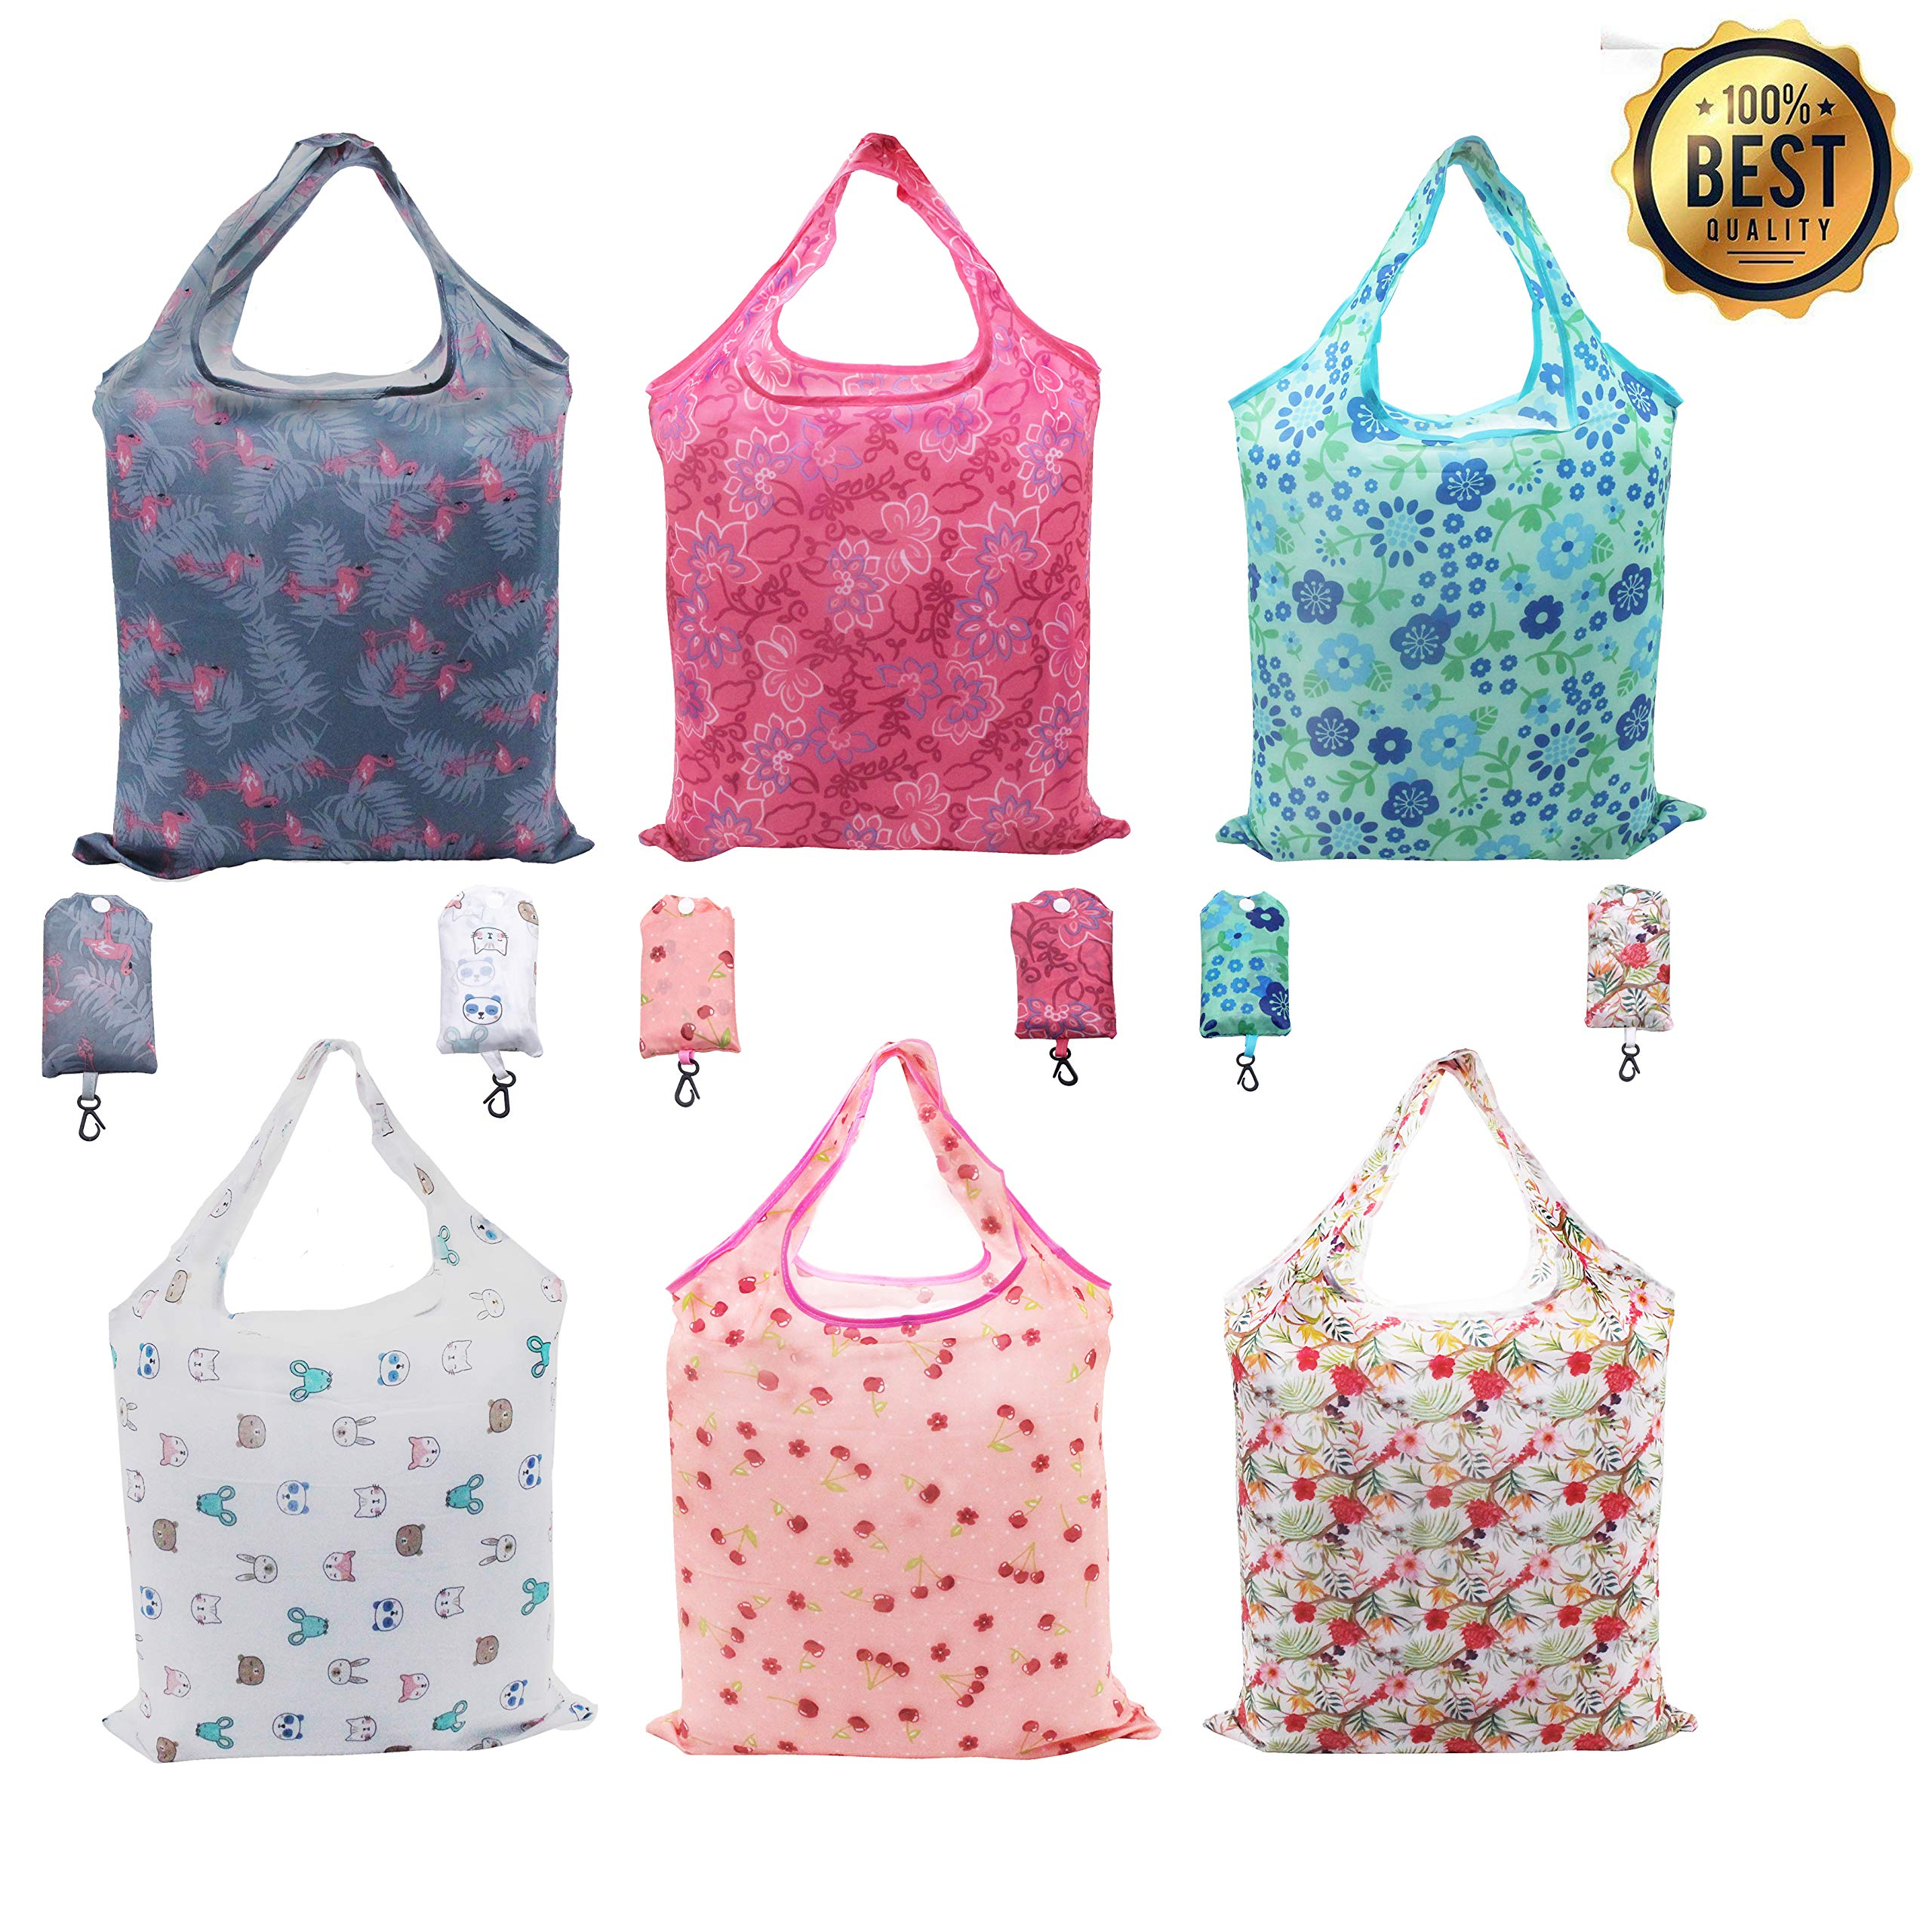 Reusable Tote Bags, Foldable Grocery Bags Reusable into Attached Pouch, Heavy Duty Rip Stop Polyester, Washable, Durable and Lightweight, Holds up to 33 lbs